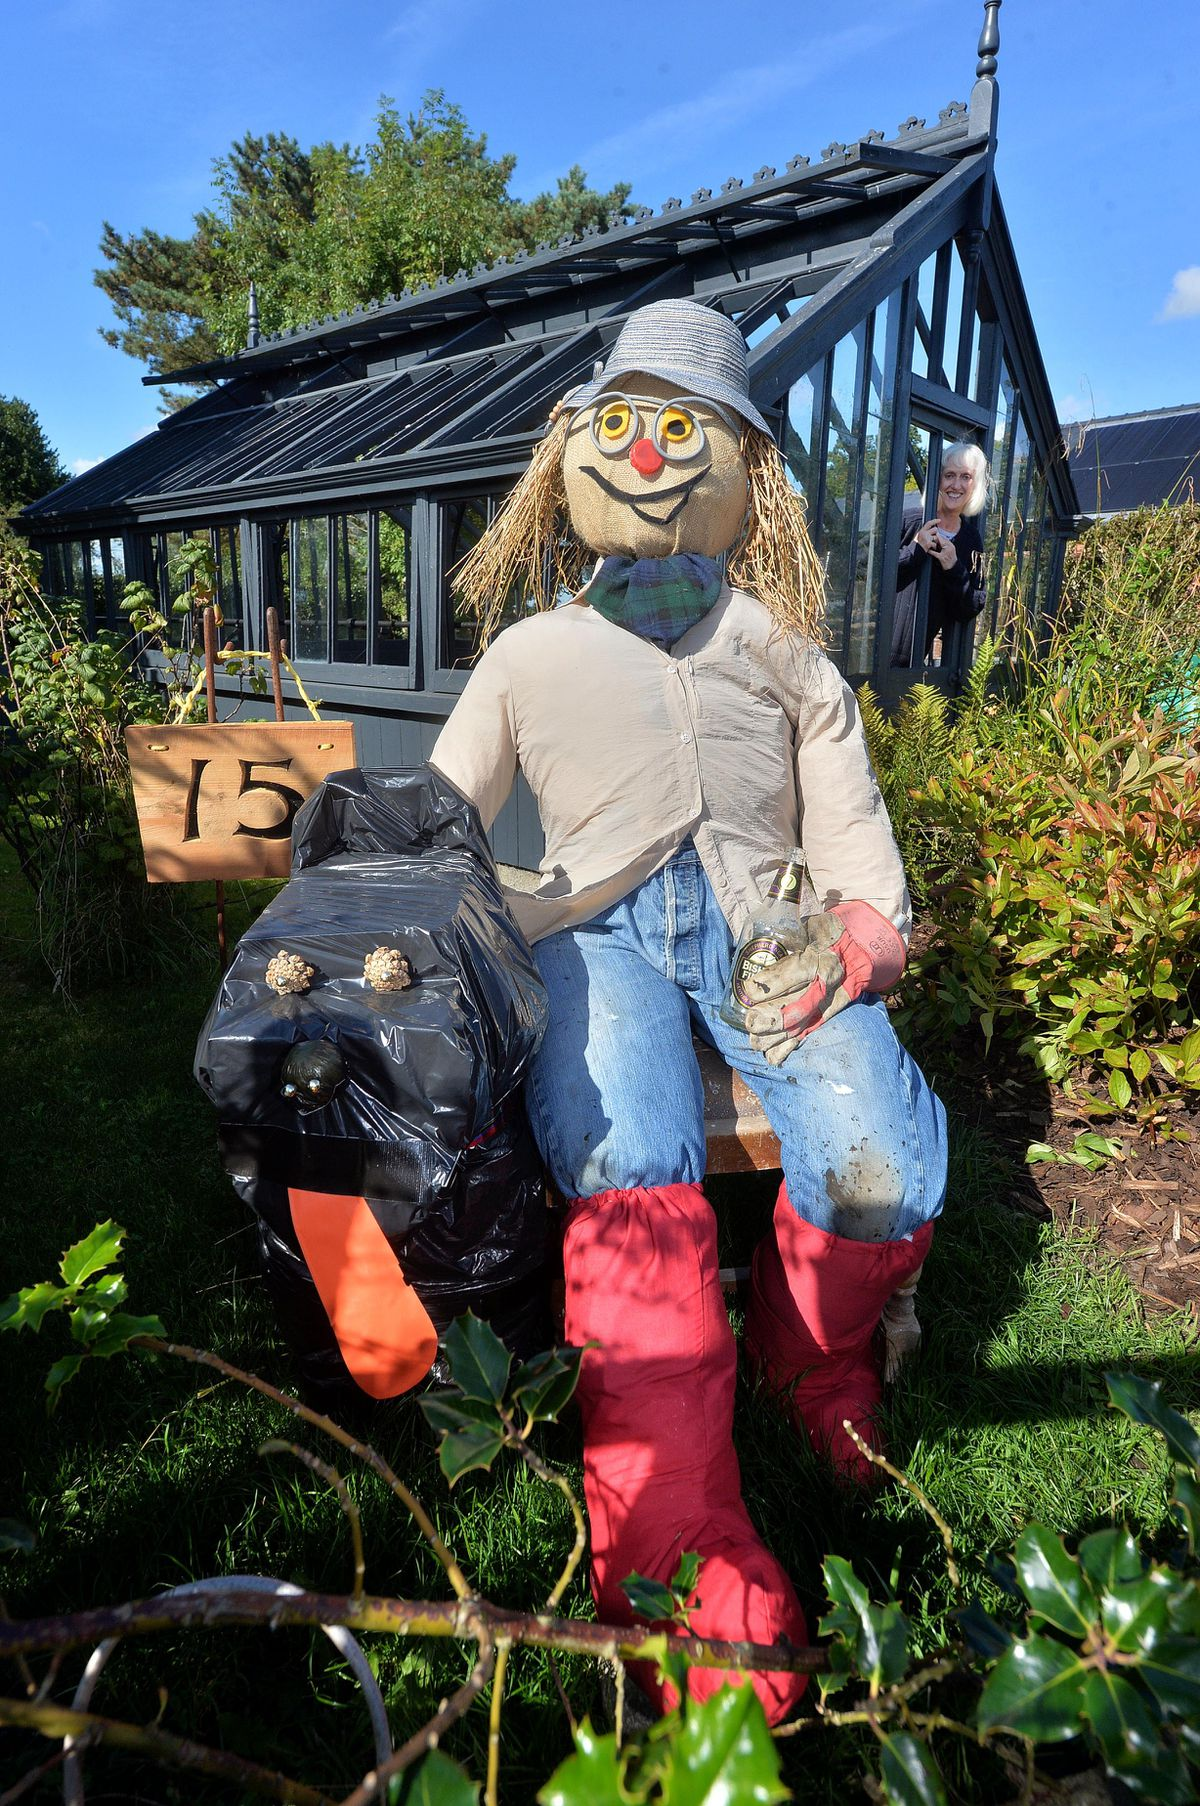 Andy the scarecrow and his dog